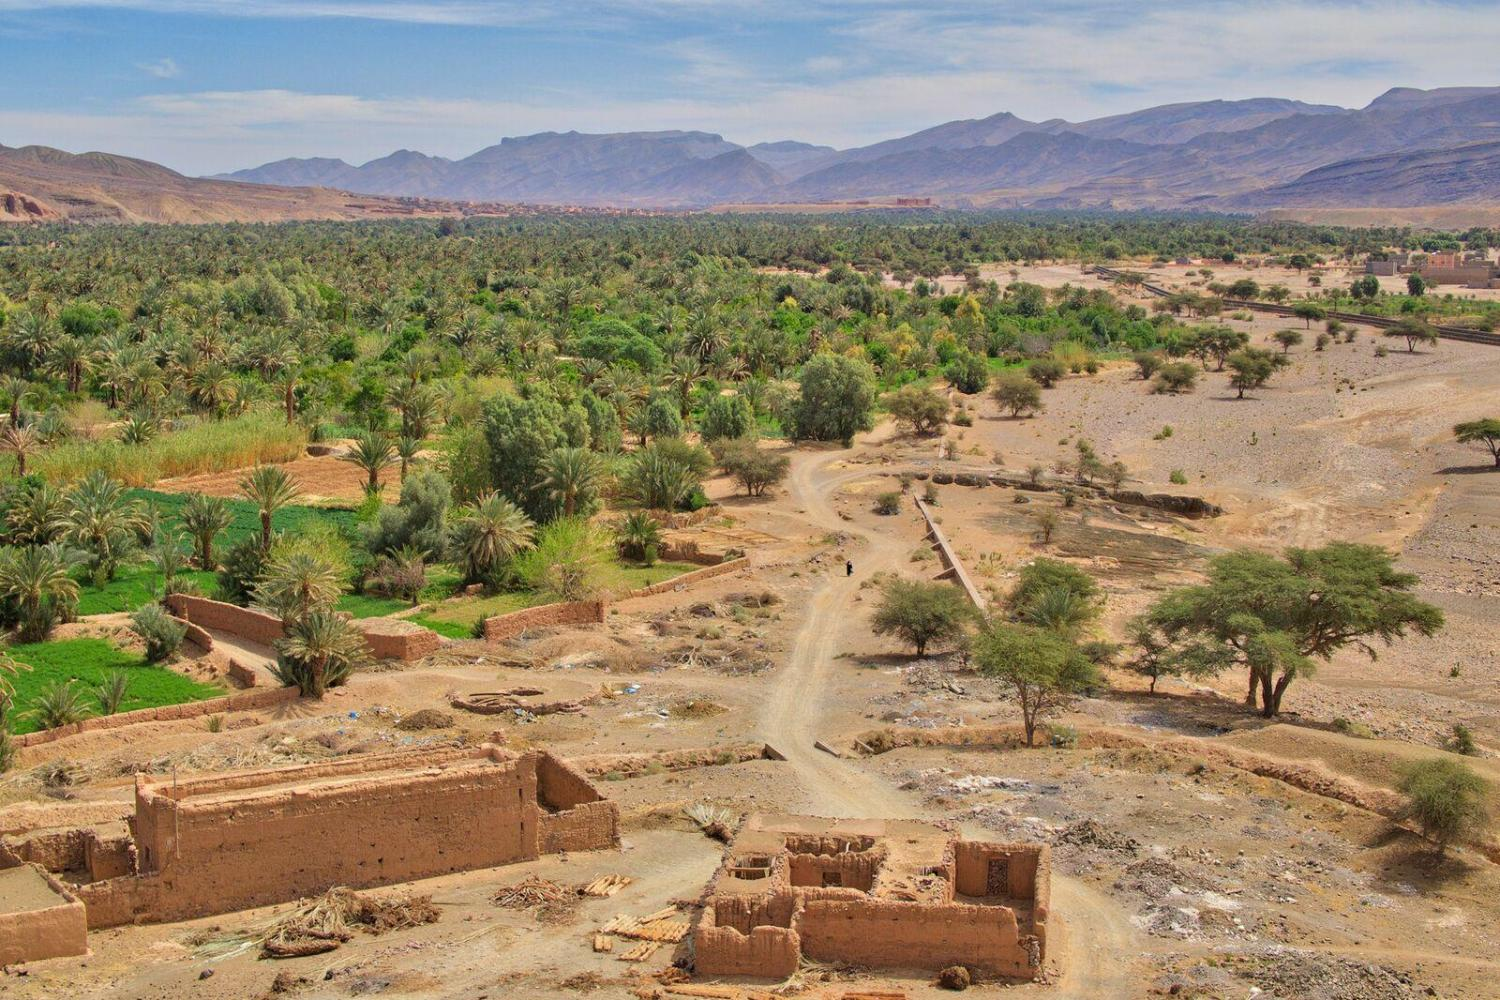 Take in the arid climate of Ouarzazate